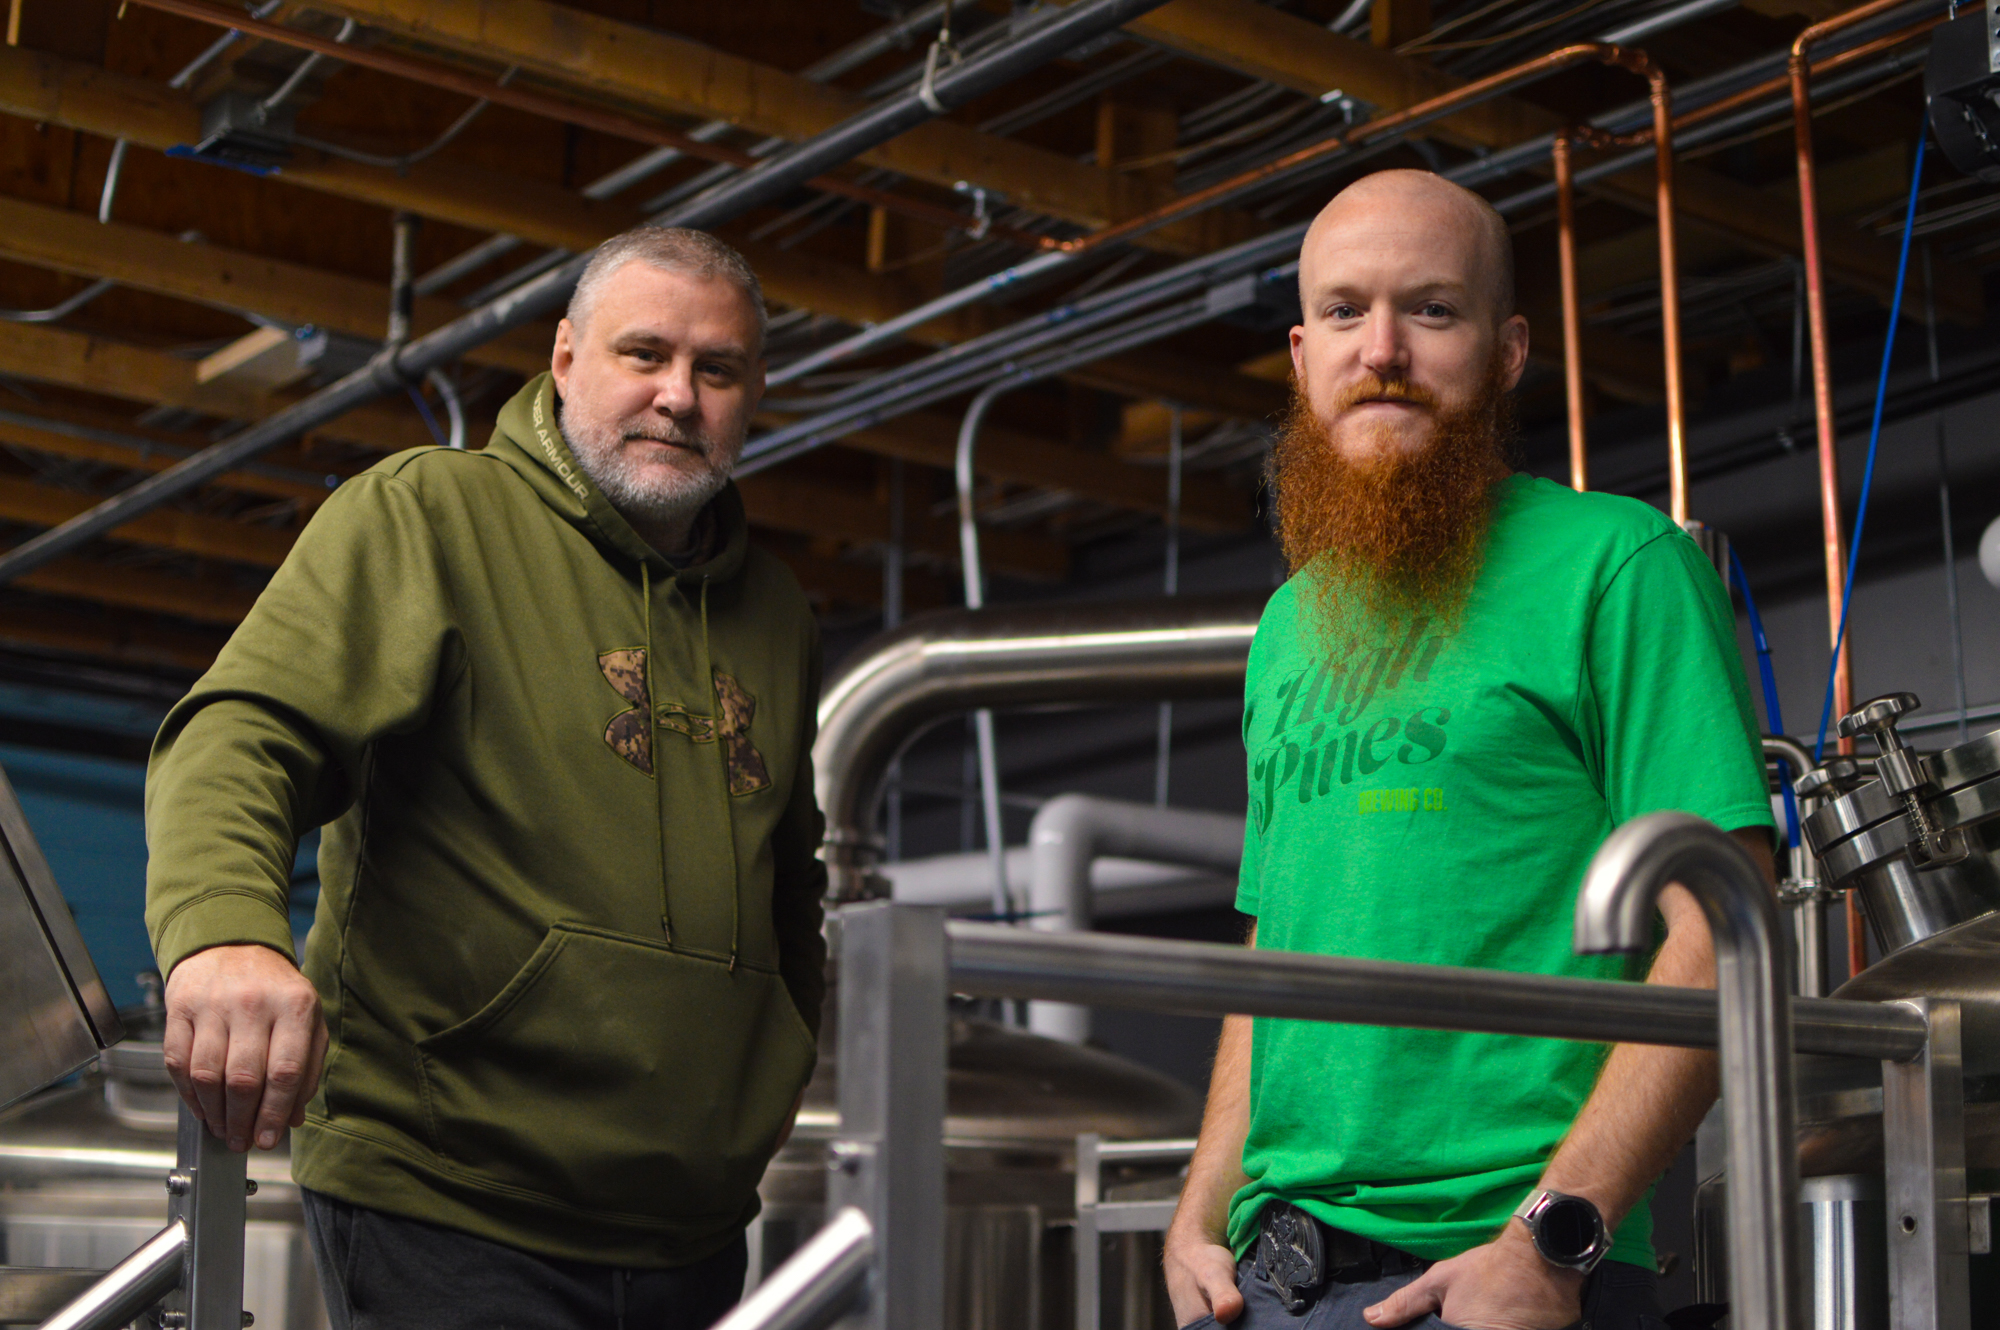 High Pines Brewing Company's Peter and head brewer Matt Faulkner • Photo by Madison Miller-WEB-008